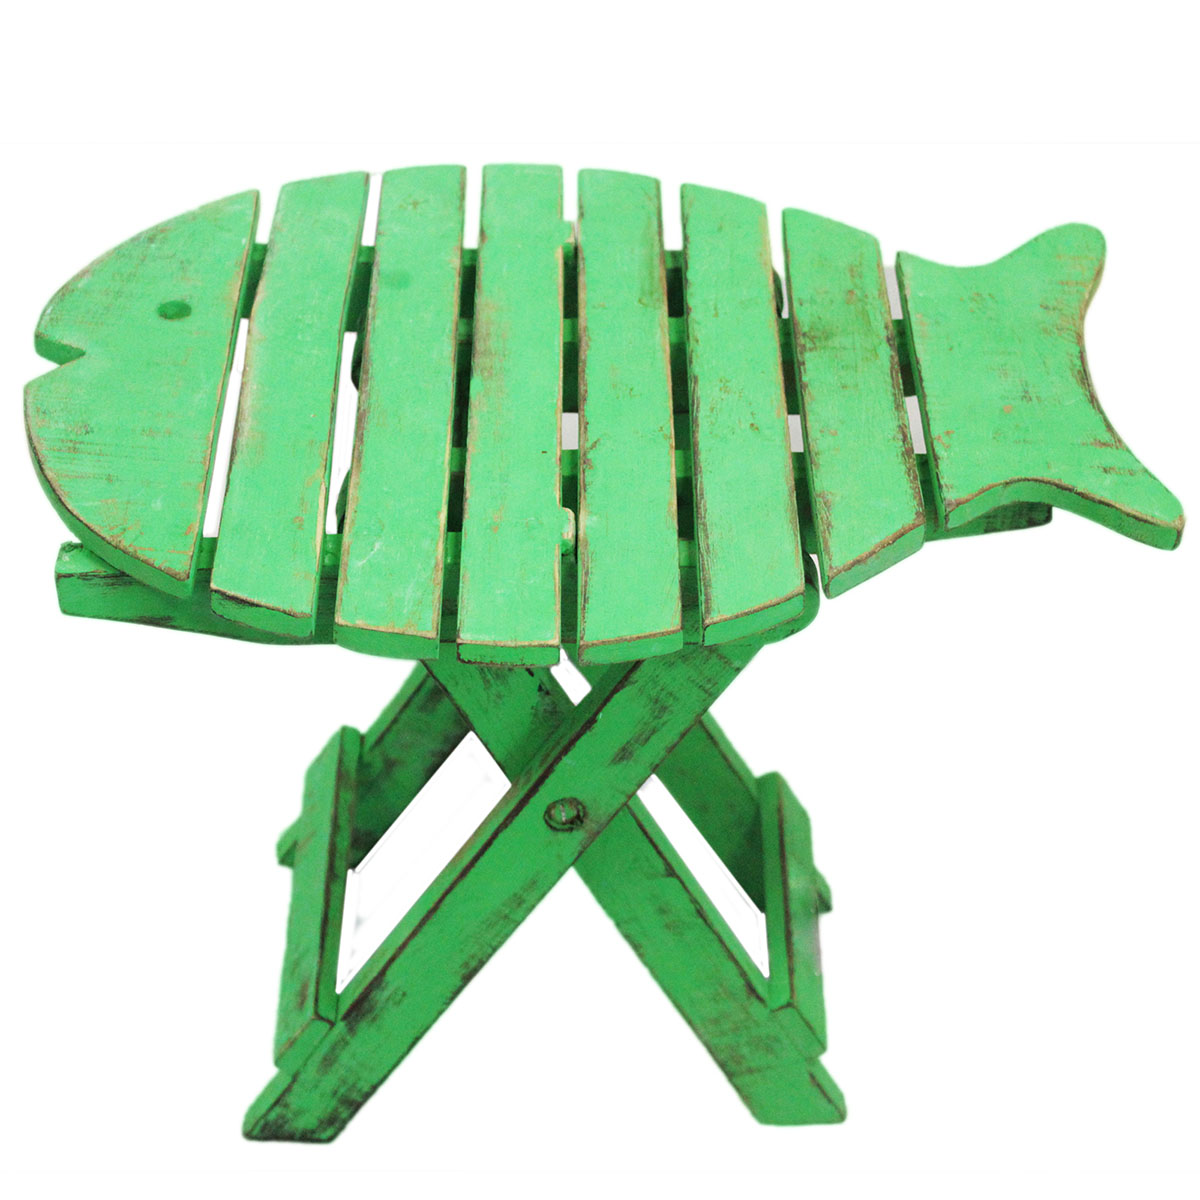 Wooden Folding Fish Chairs